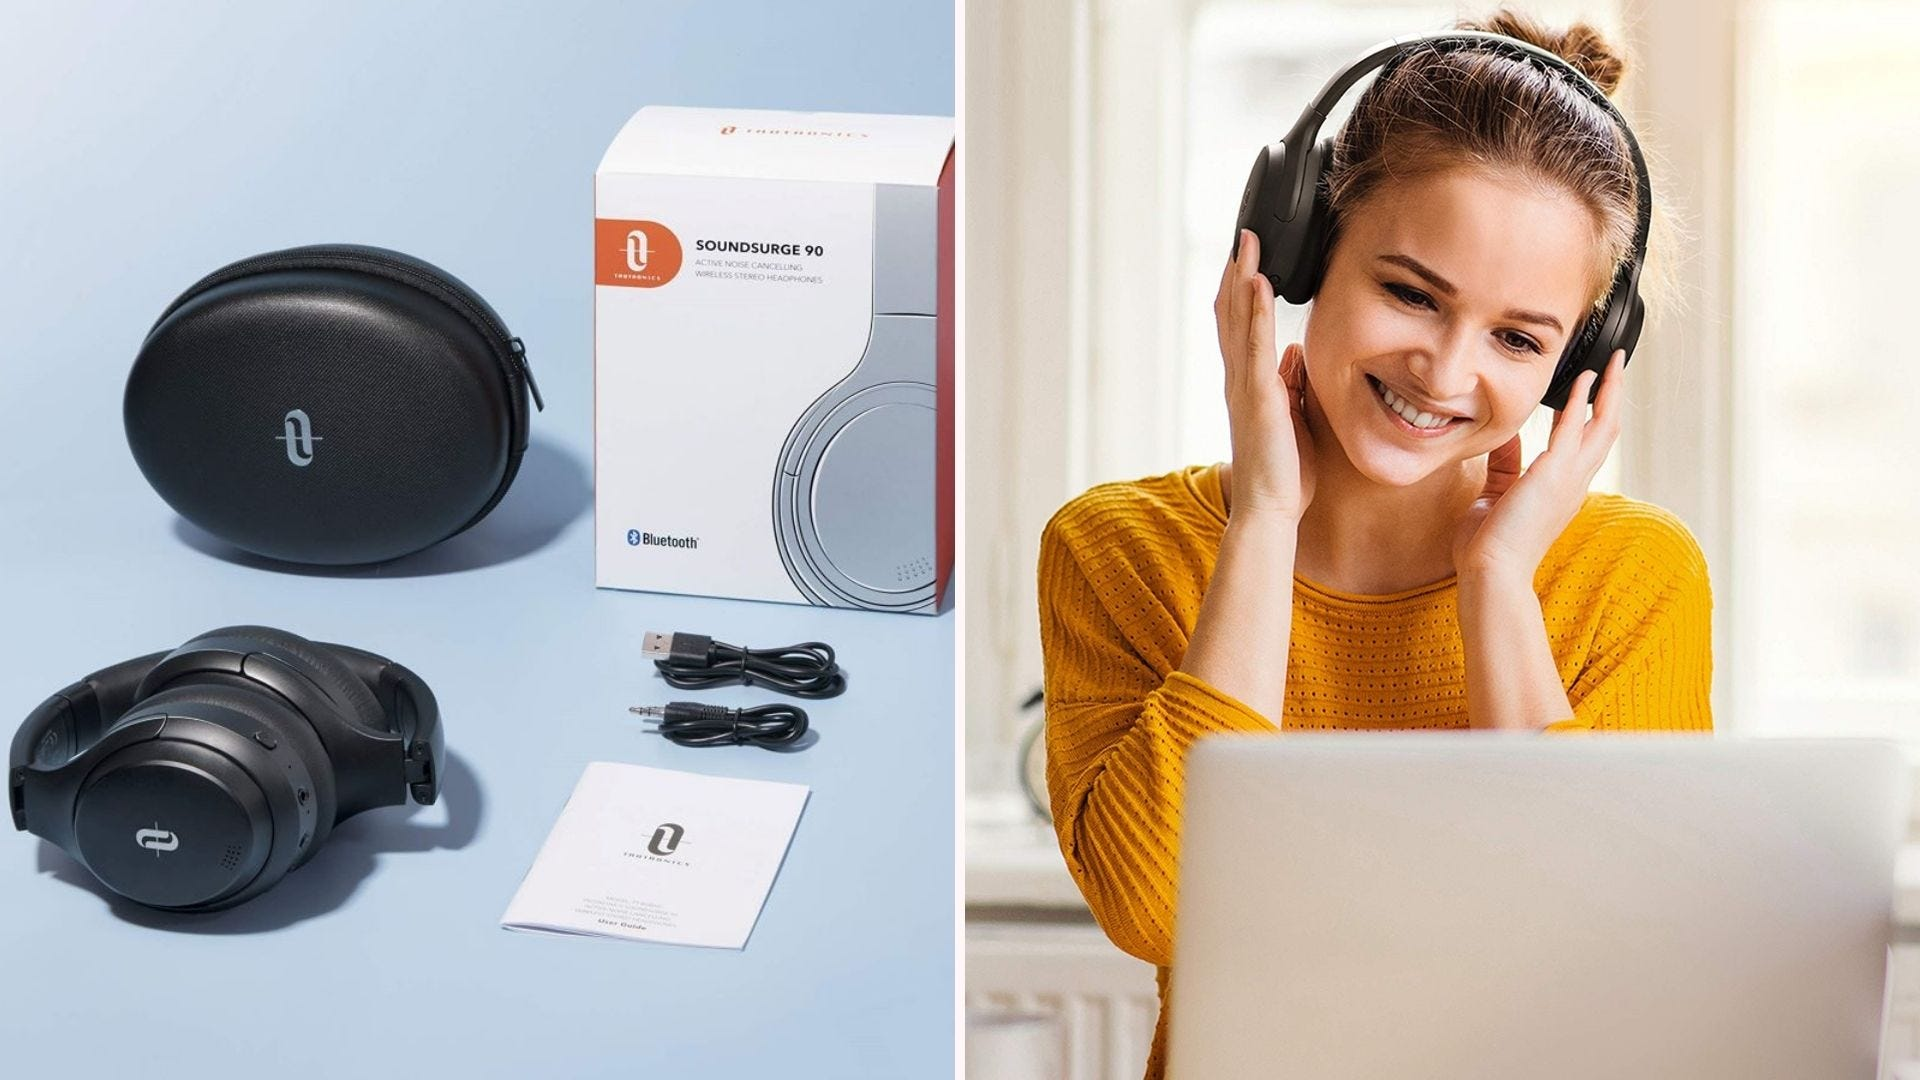 TaoTronics' hybrid active noise canceling headphones with bag, cords and box, and a woman wearing them looking at her laptop.